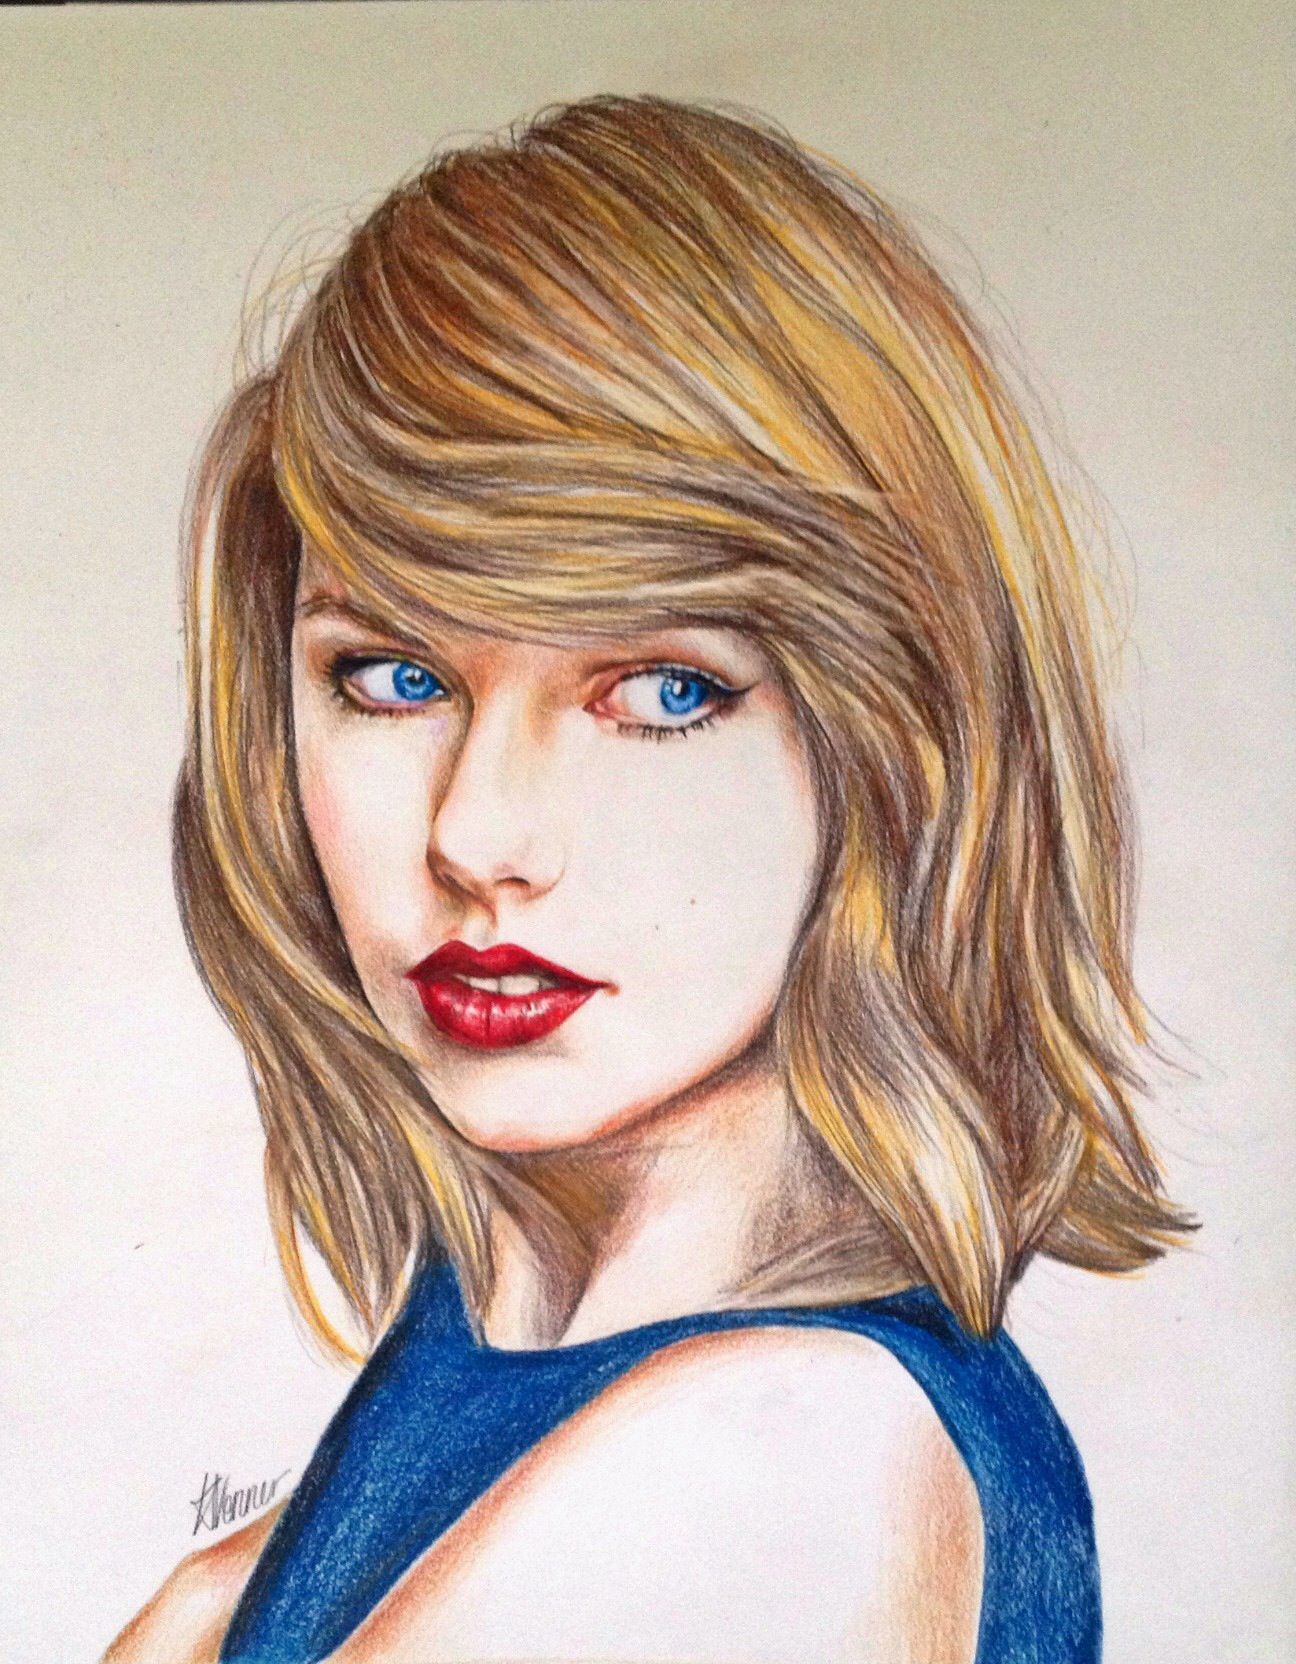 Taylor Swift coloured pencil drawing #CelebrityPencilDrawings ...